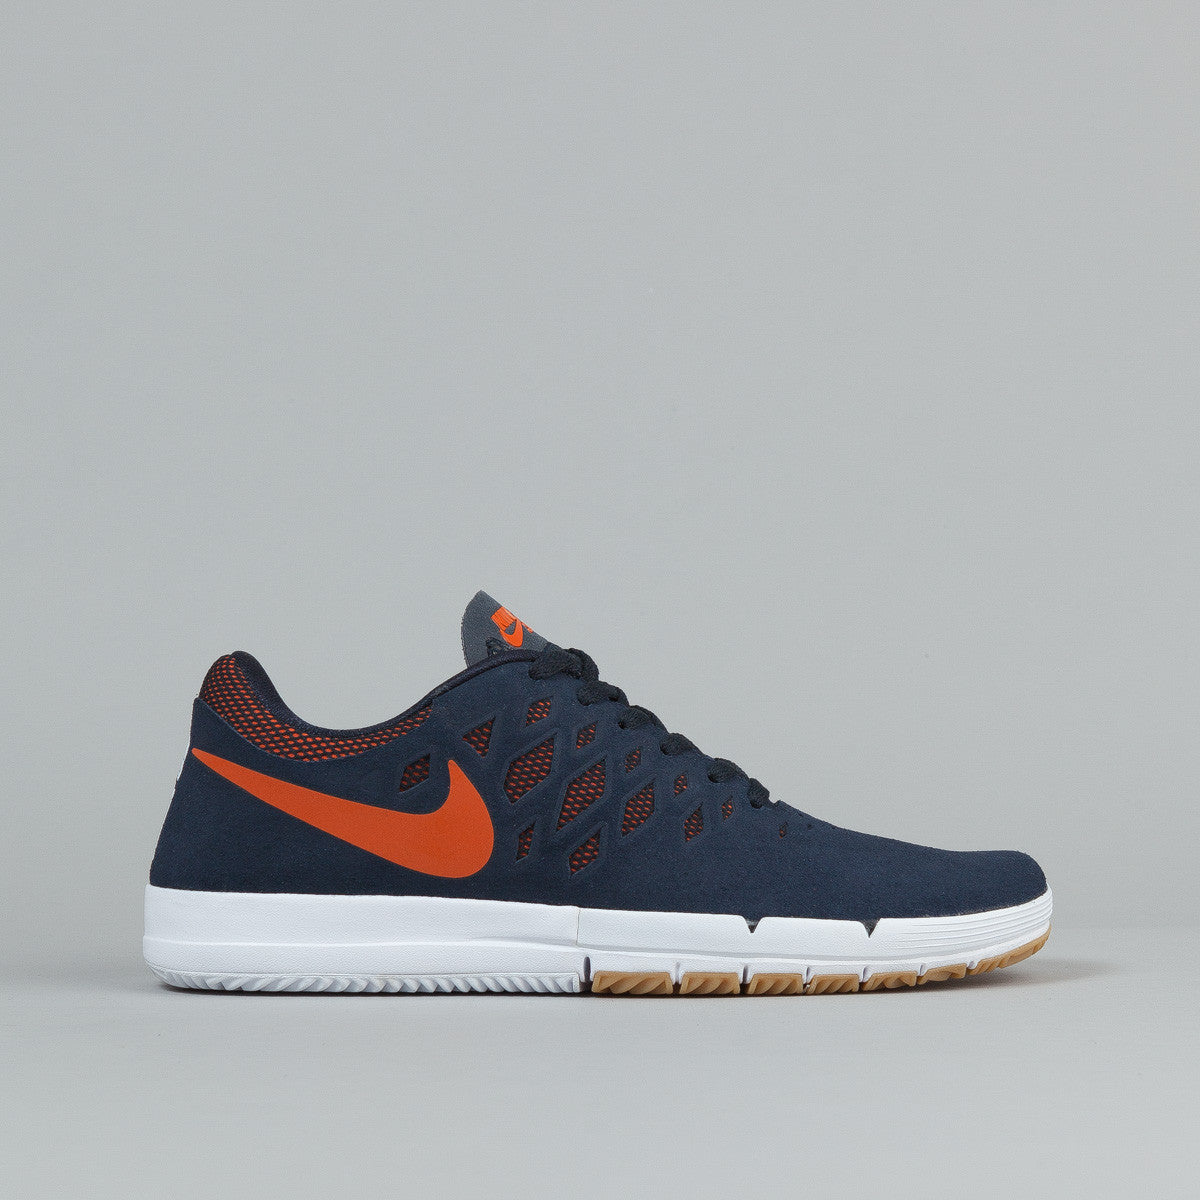 Nike SB Free Shoes - Dark Obsidian / Unv Orange / - White